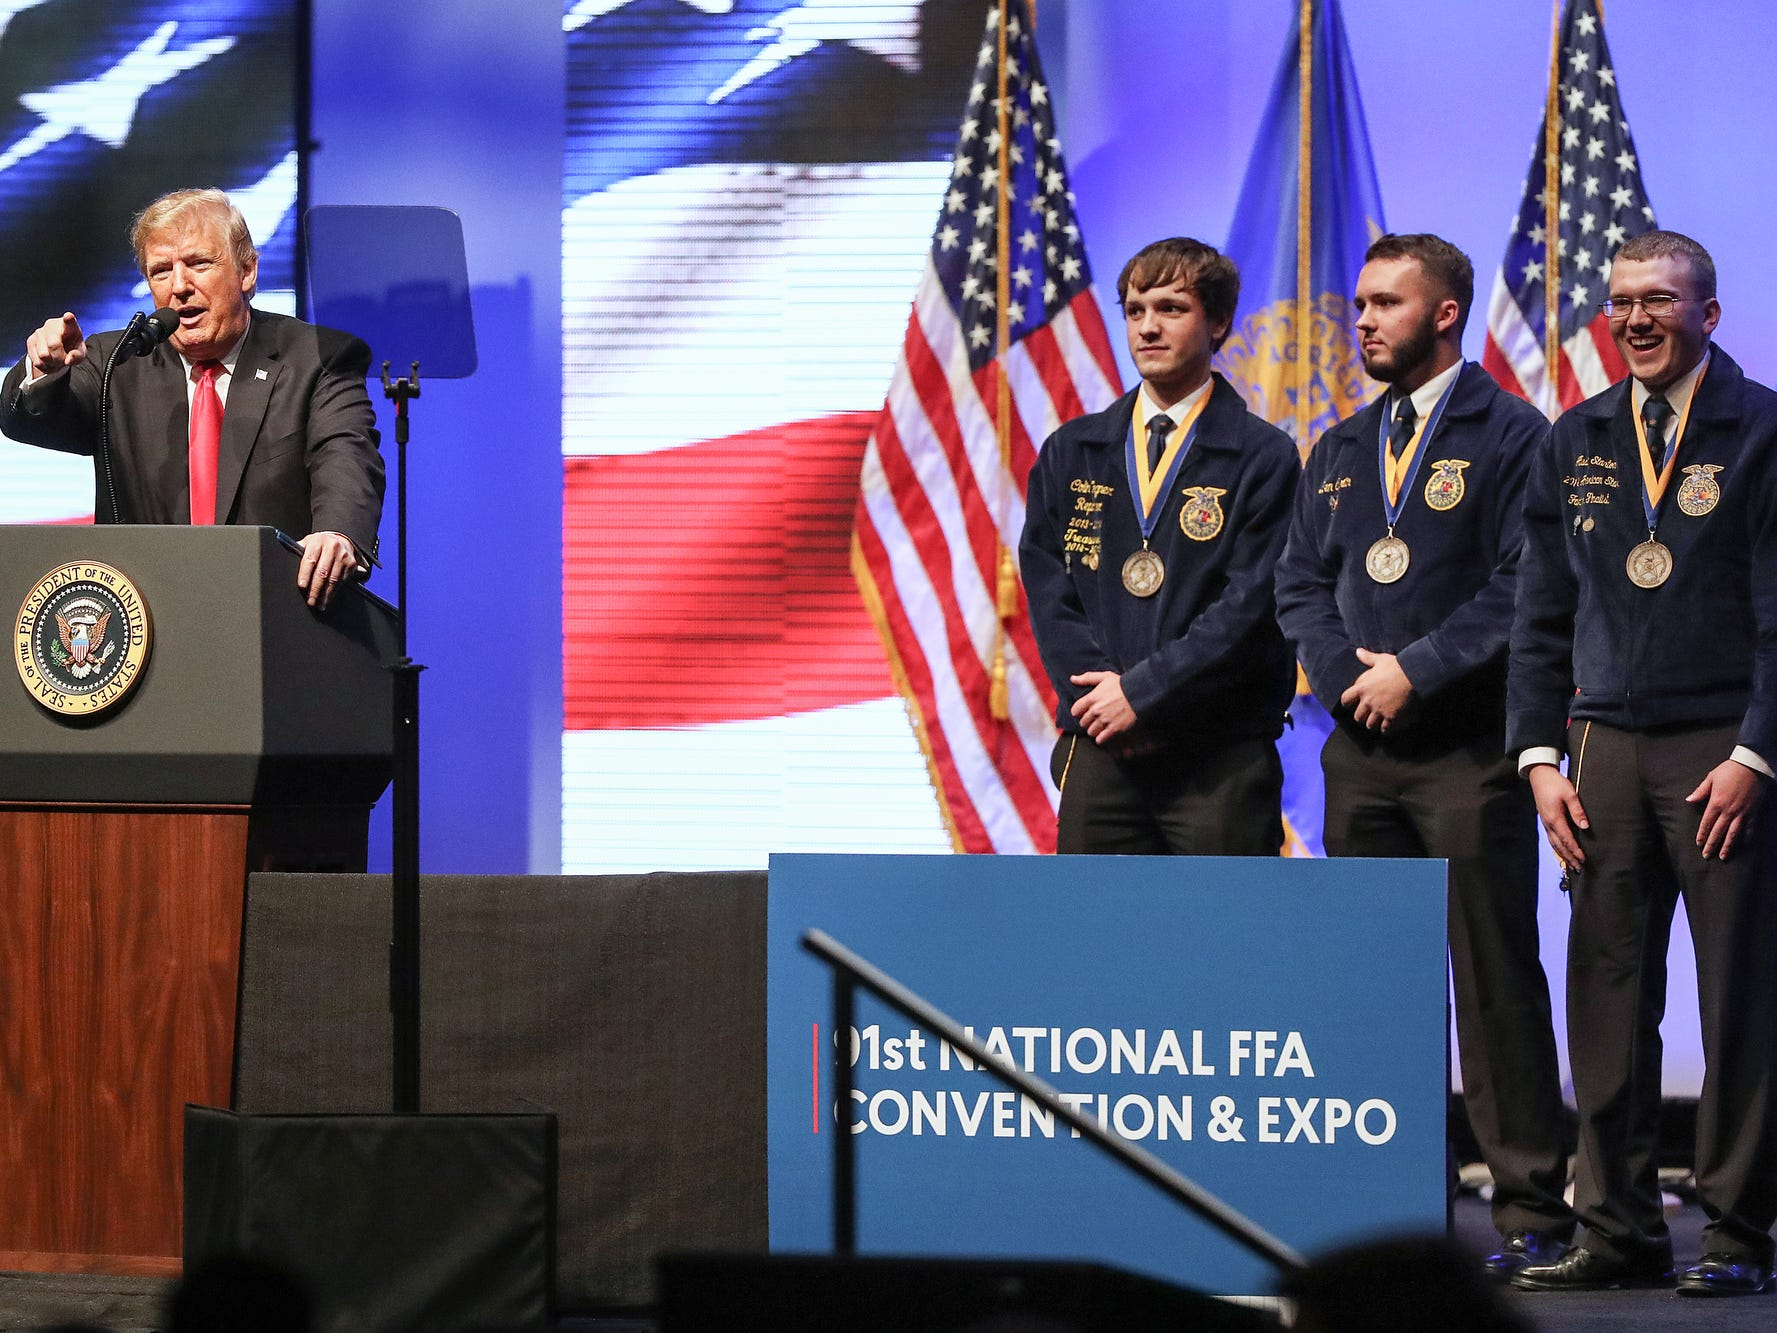 President Donald Trump recognizes FFA award recipients Colin Wegner, Benjamin Curtain and Austin Stanton during his speech at the annual Future Farmers of America Convention and Expo at Banker's Life Fieldhouse in Indianapolis, Saturday, Oct. 27, 2018.